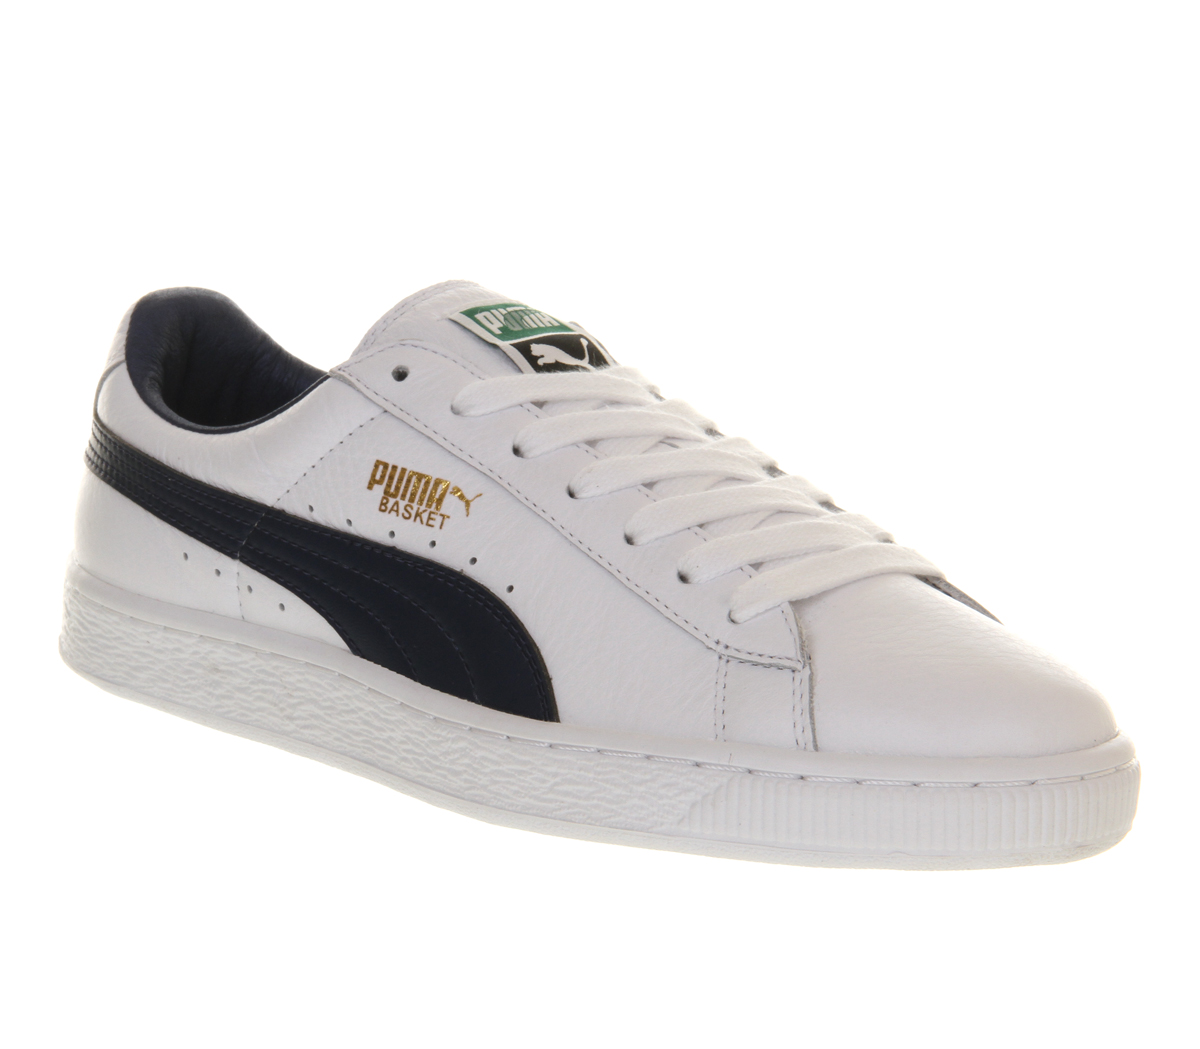 puma basket classic white blue leather in white for men lyst. Black Bedroom Furniture Sets. Home Design Ideas